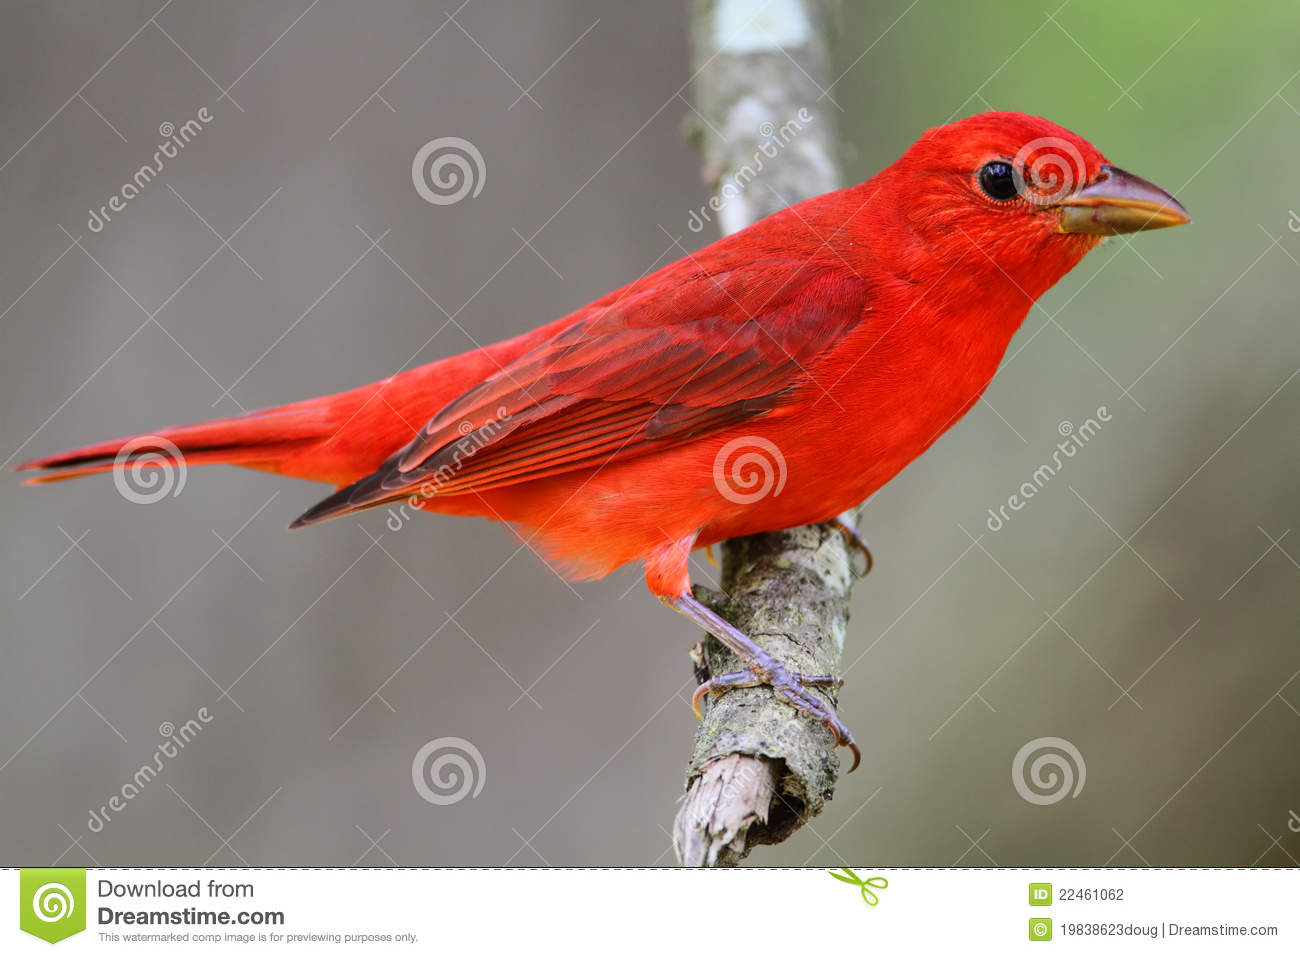 Summer Tanager clipart #3, Download drawings